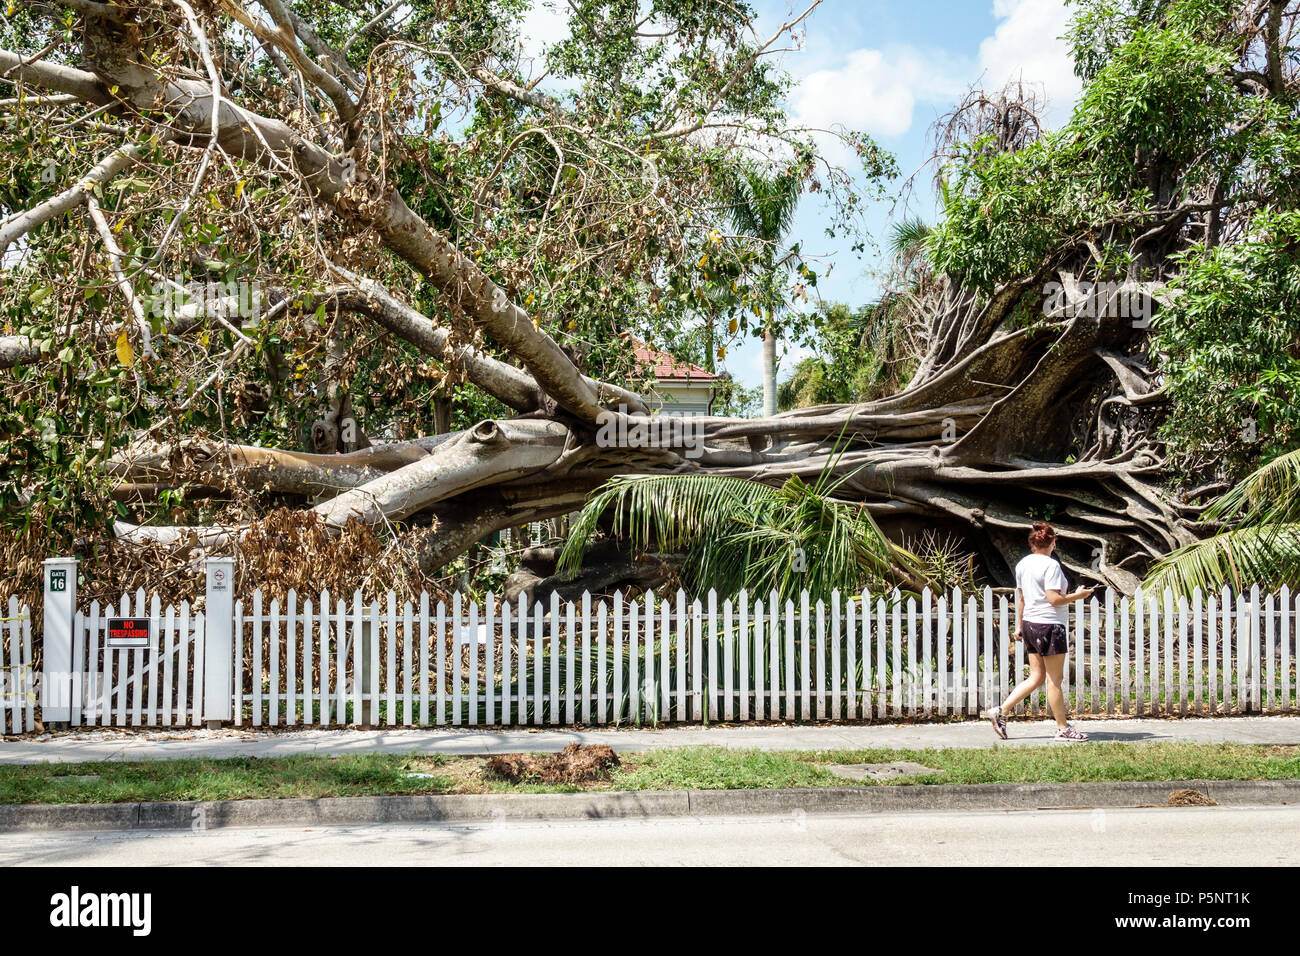 Fort Ft. Myers Florida McGregor Boulevard Edison & Ford Winter Estates fallen giant Mysore fig Ficus myorensis tree exposed root system Hurricane Irma storm wind damage destruction aftermath woman walking passerby white picket fence - Stock Image